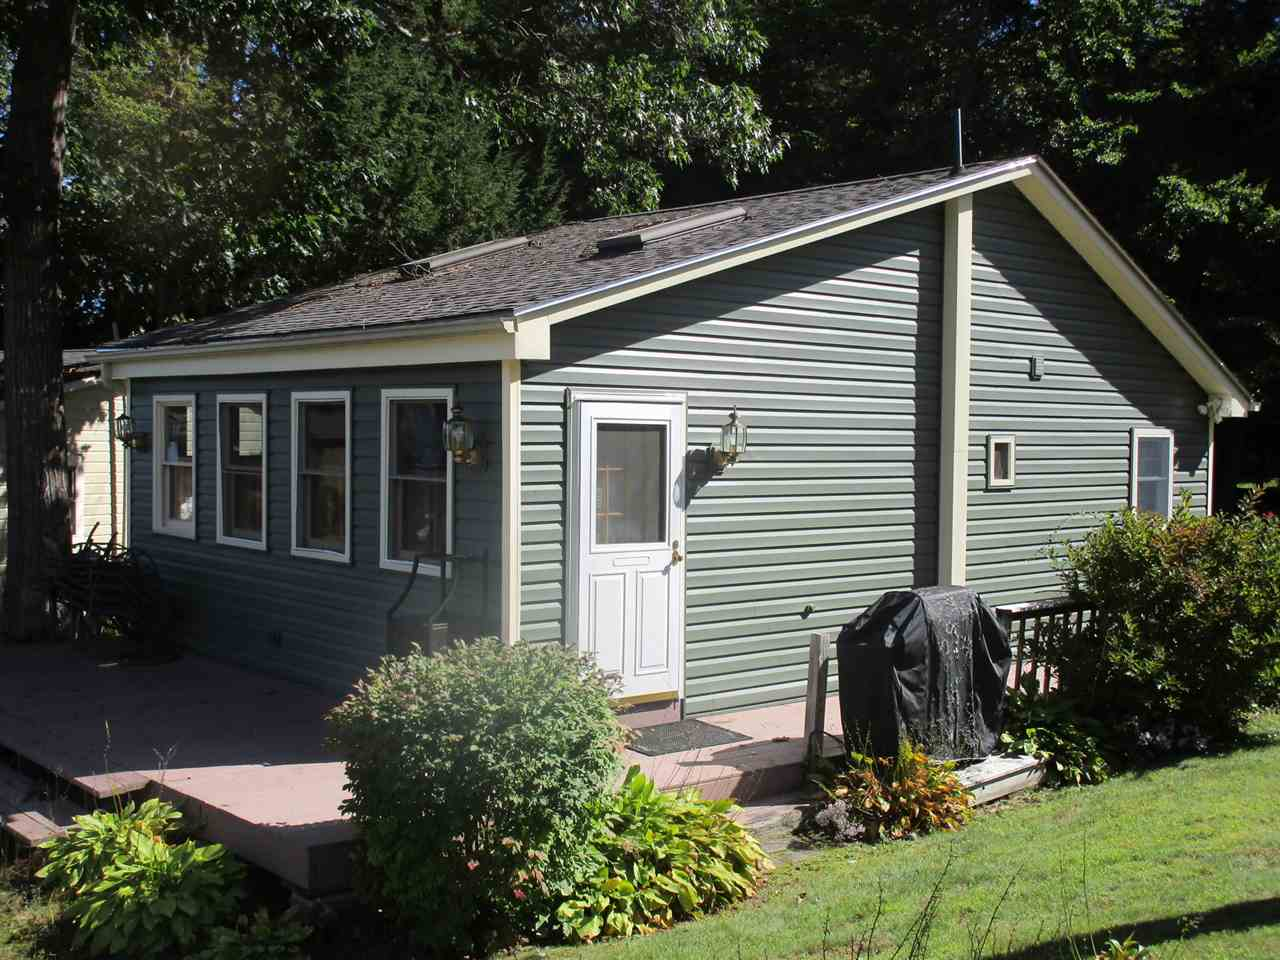 Tremendous Search Vacation Rentals In Bristol Nh Peabody Smith Realty Best Image Libraries Counlowcountryjoecom